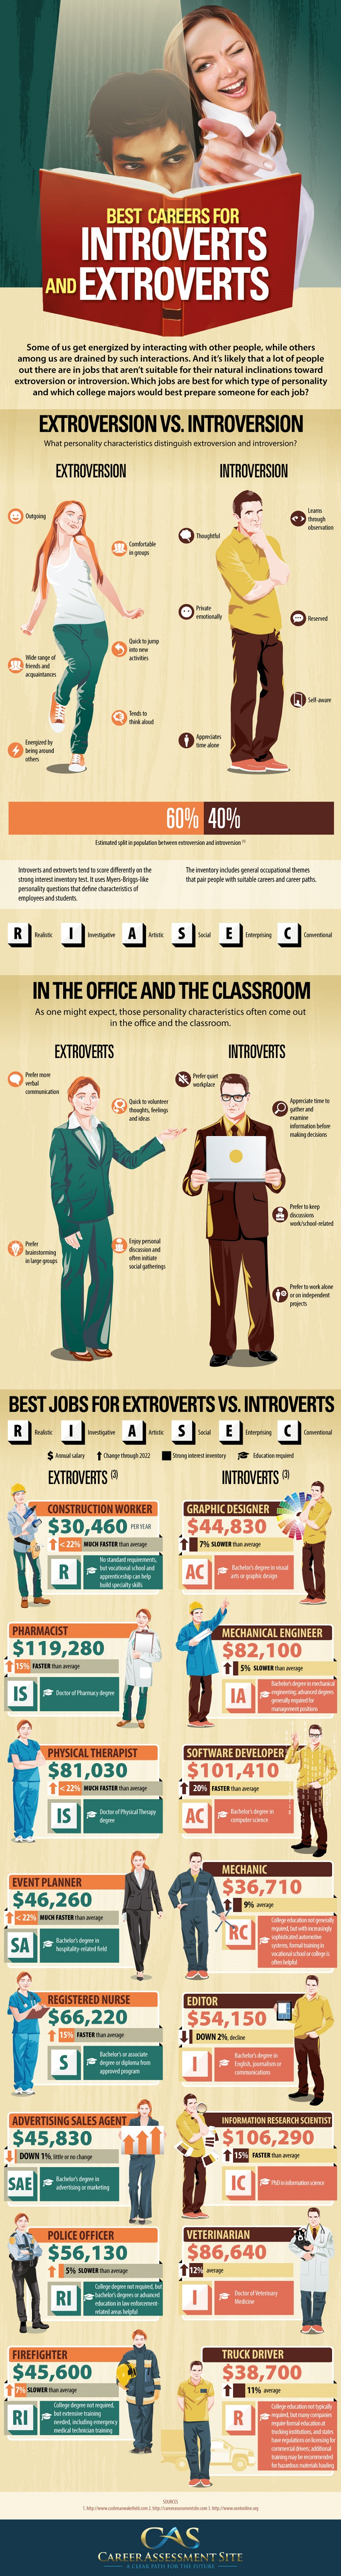 Career-Infographic